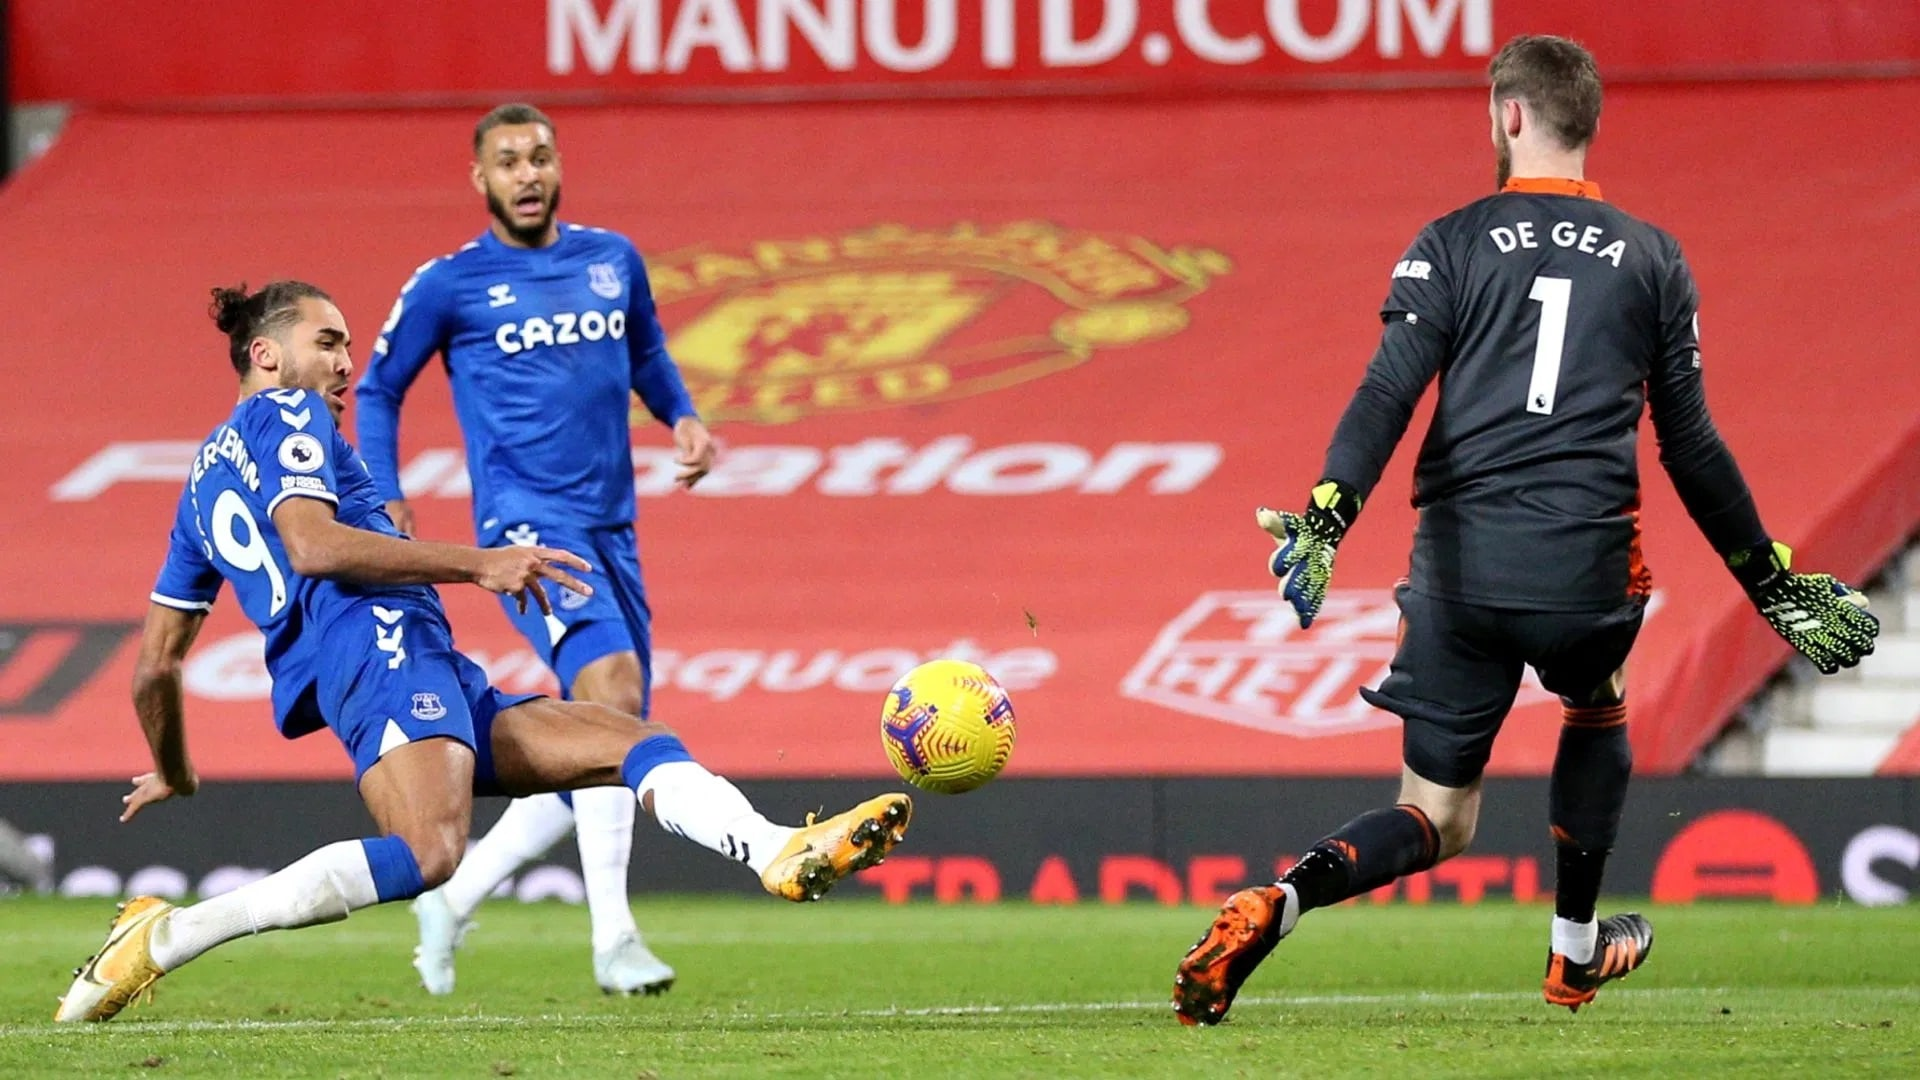 Manchester United vs Everton Football Club Ends in a 3-3 Draw